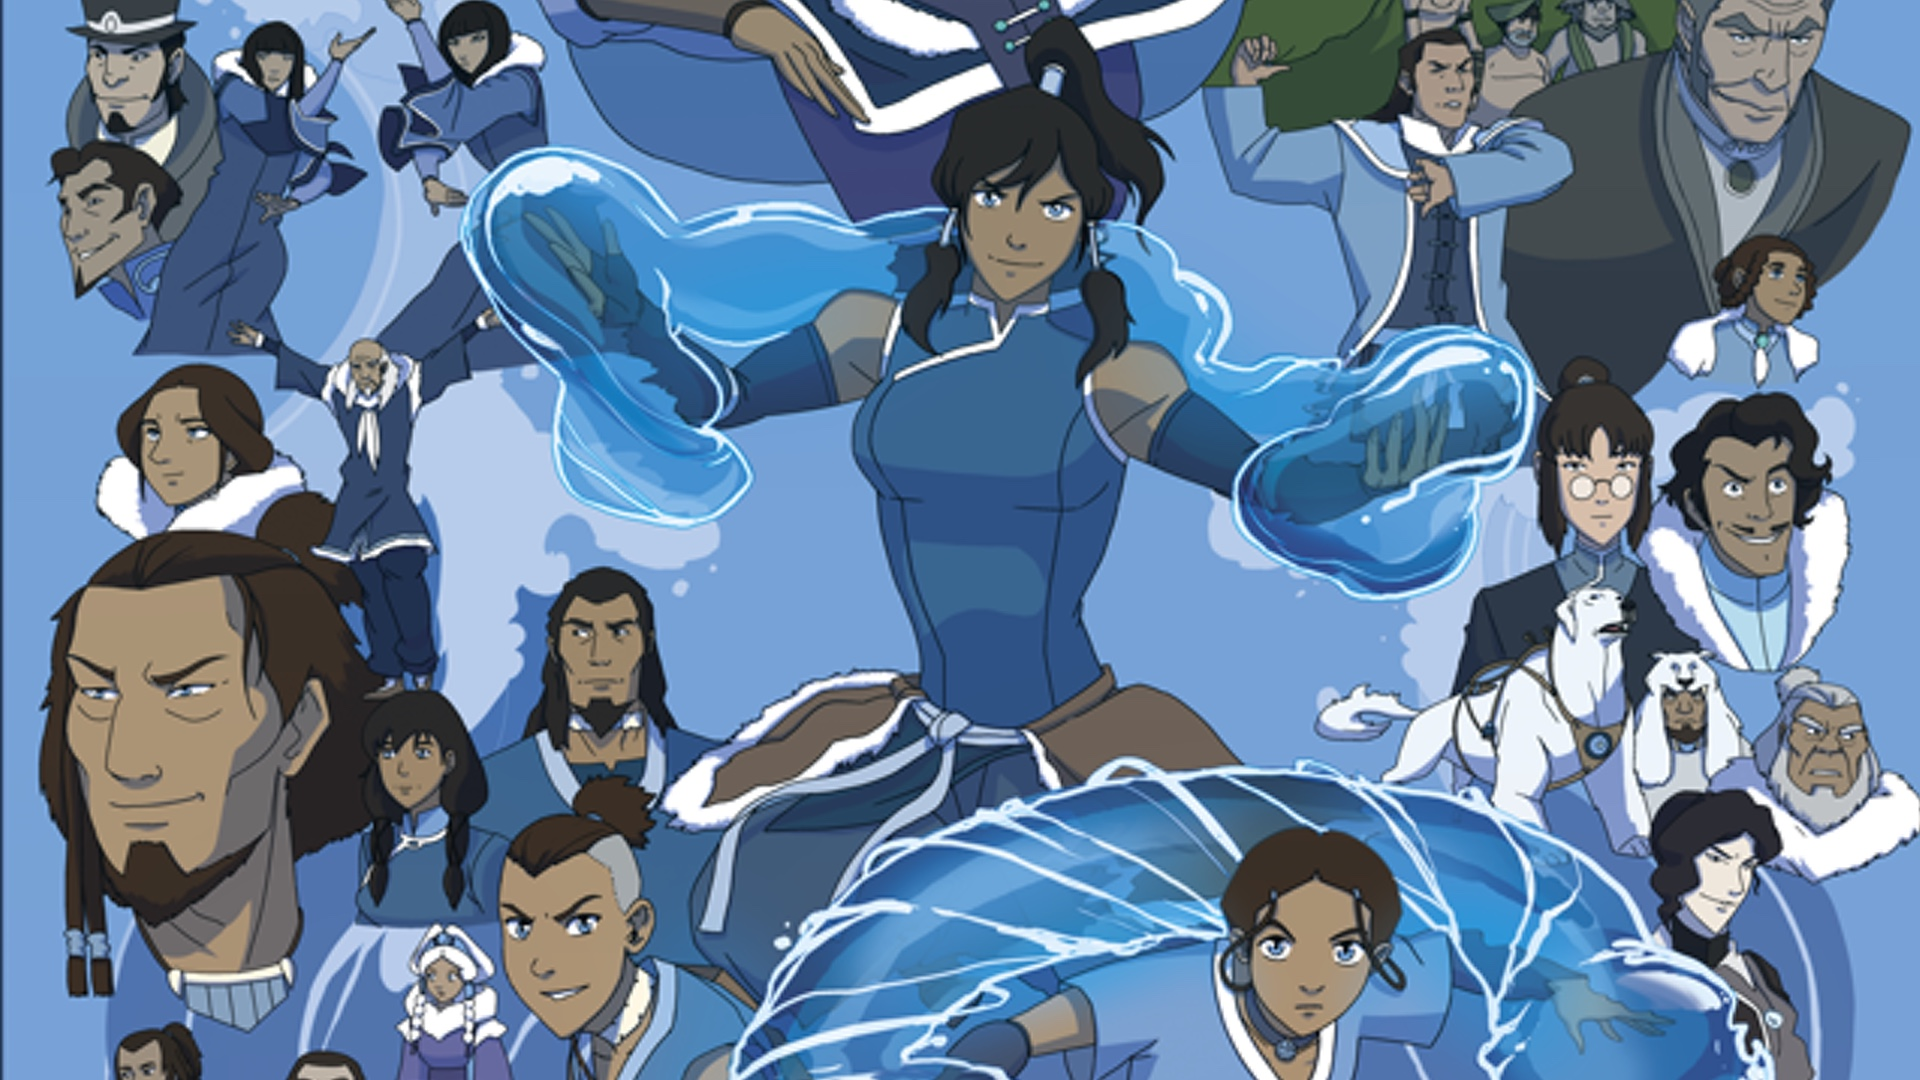 these-four-fan-posters-for-avatar-the-last-airbender-have-mastered-the-elements-social.jpg